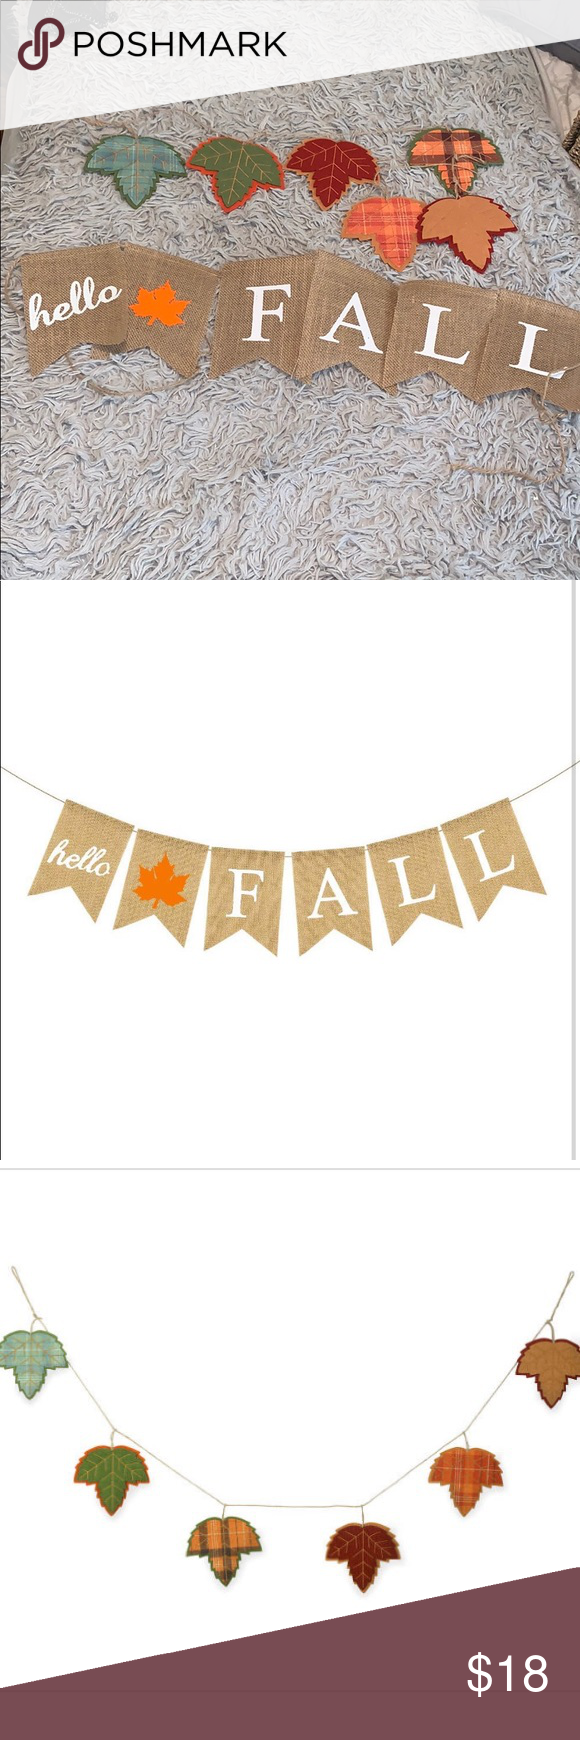 Fall leaf garland and burlap fall banner set #leafgarland